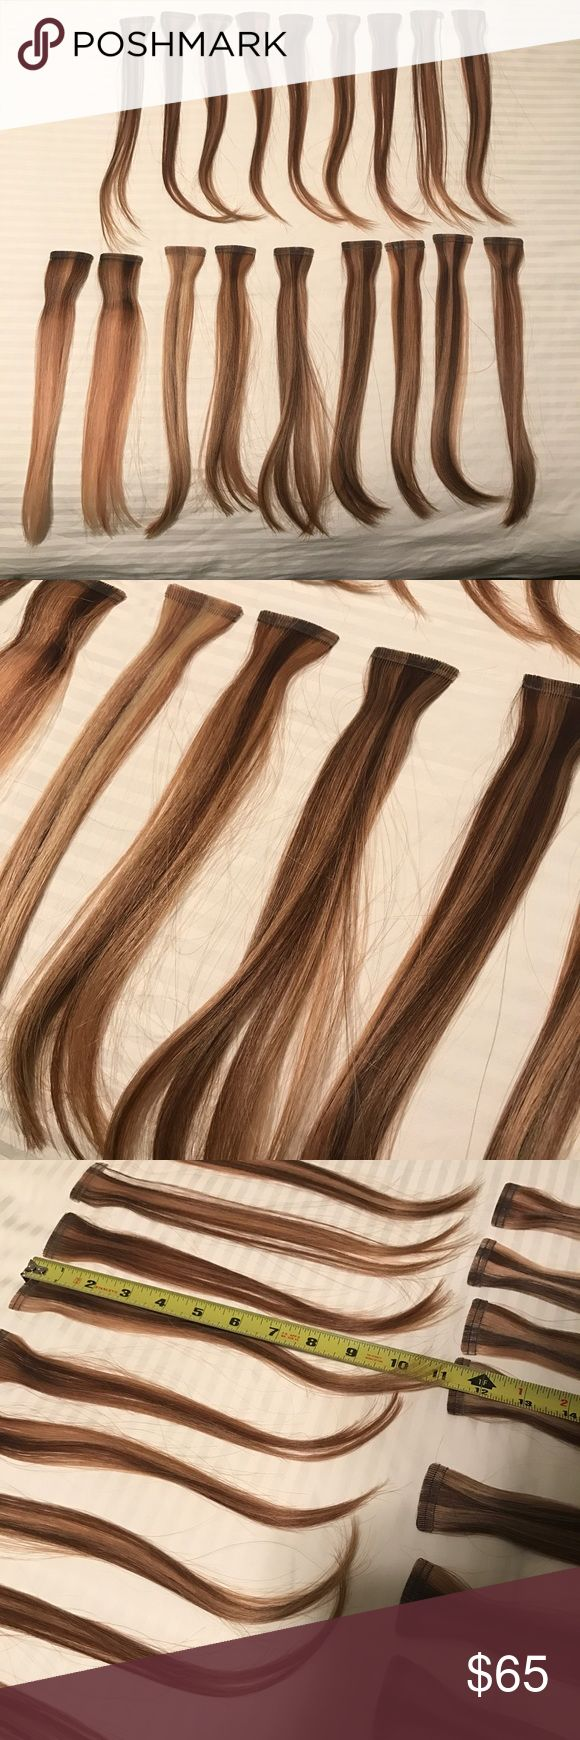 "Babe Tape In Hair Extensions Brand:: Babe🔹Color:: 6/10 (light brown/blonde)🔹Individual Pieces:: 27 - enough for a full head of hair for someone with thin to average hair density (bottom row in photo are stuck back to back so it shows less pieces than actually exists) 🔹Length:: 11.5"" (will create a collar bone length look)🔹Hair Condition:: excellent/healthy🔹In my opinion these are the greatest damage free hair extensions ever! I have worn them for over 2 years and will never give them…"